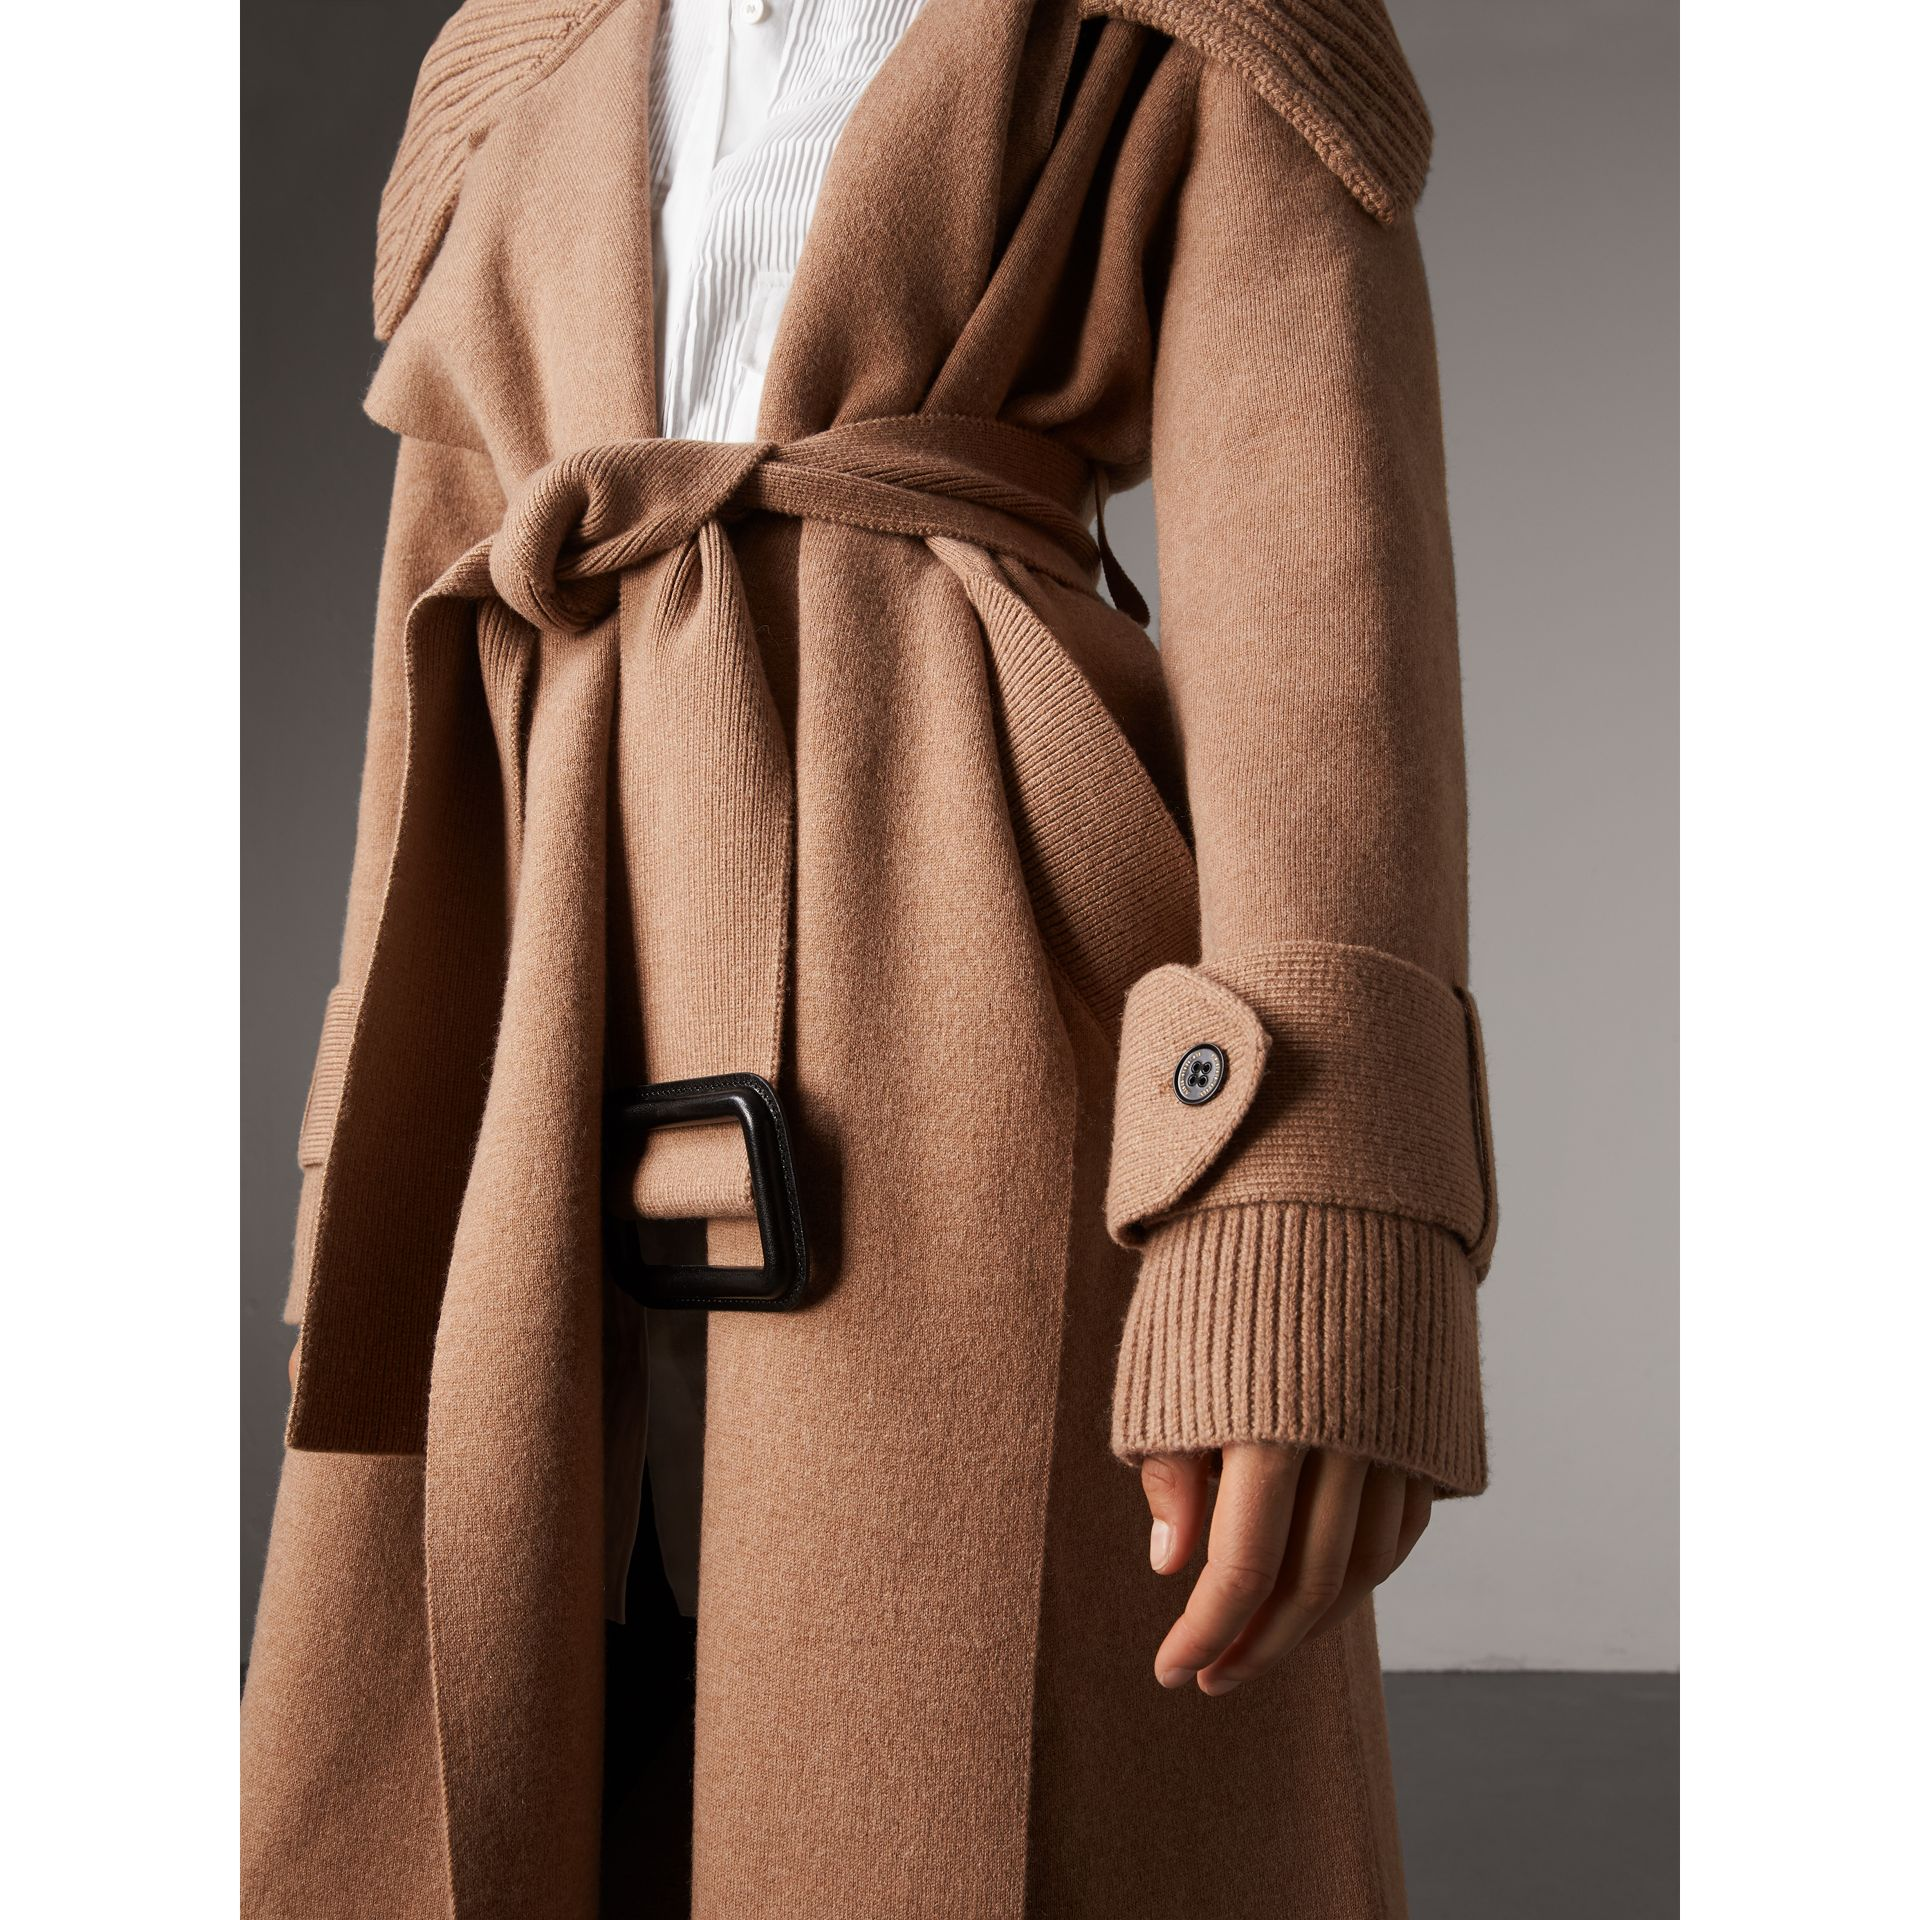 Knitted Wool Cashmere Wrap Coat in Camel - Women | Burberry Australia - gallery image 1